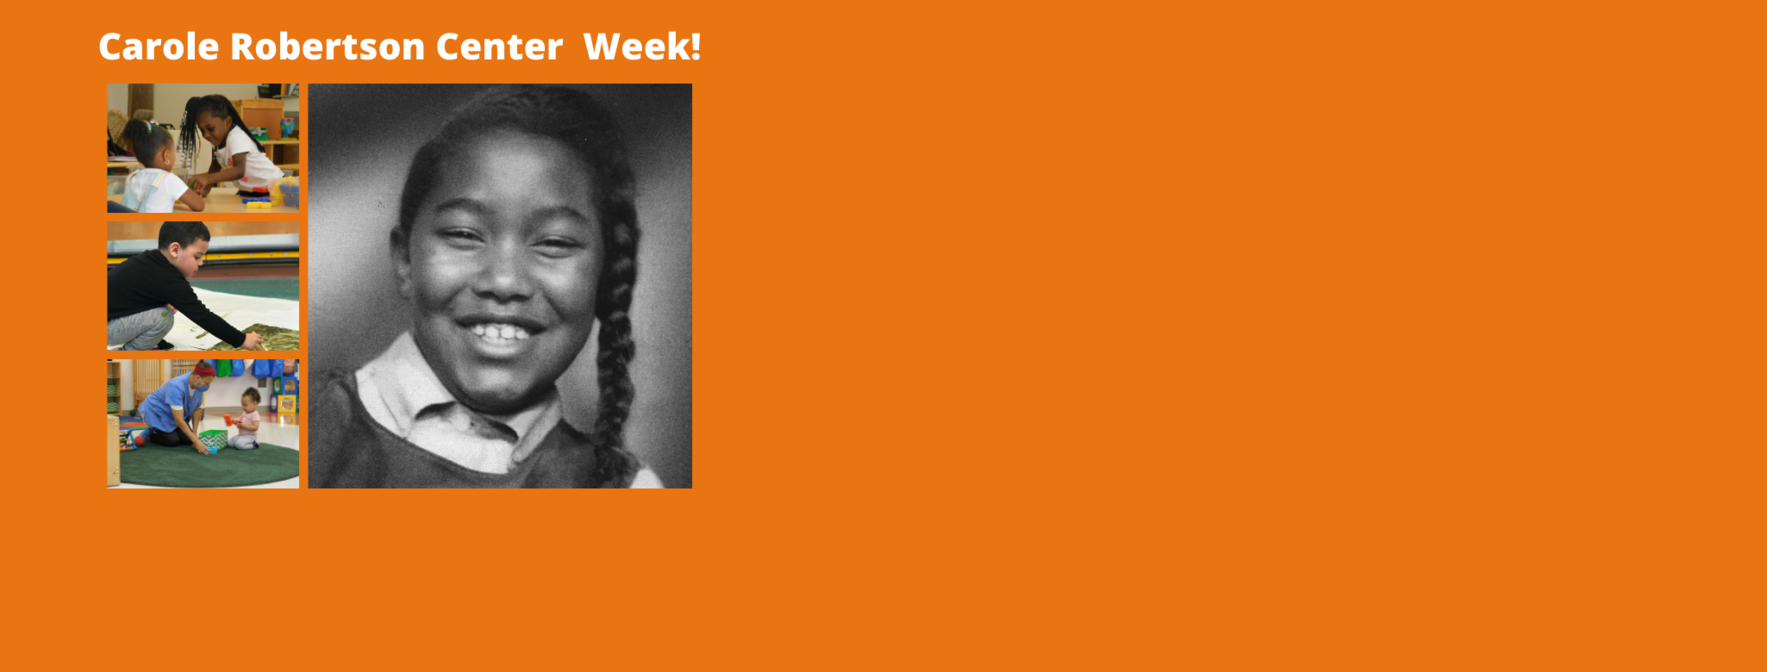 Yes!  I want to support Carole Robertson Center Week!   We invite you to contribute to high quality programming and youth development for CRCL children and families as we remember Carole Robertson, and the opportunities that were denied her.   image